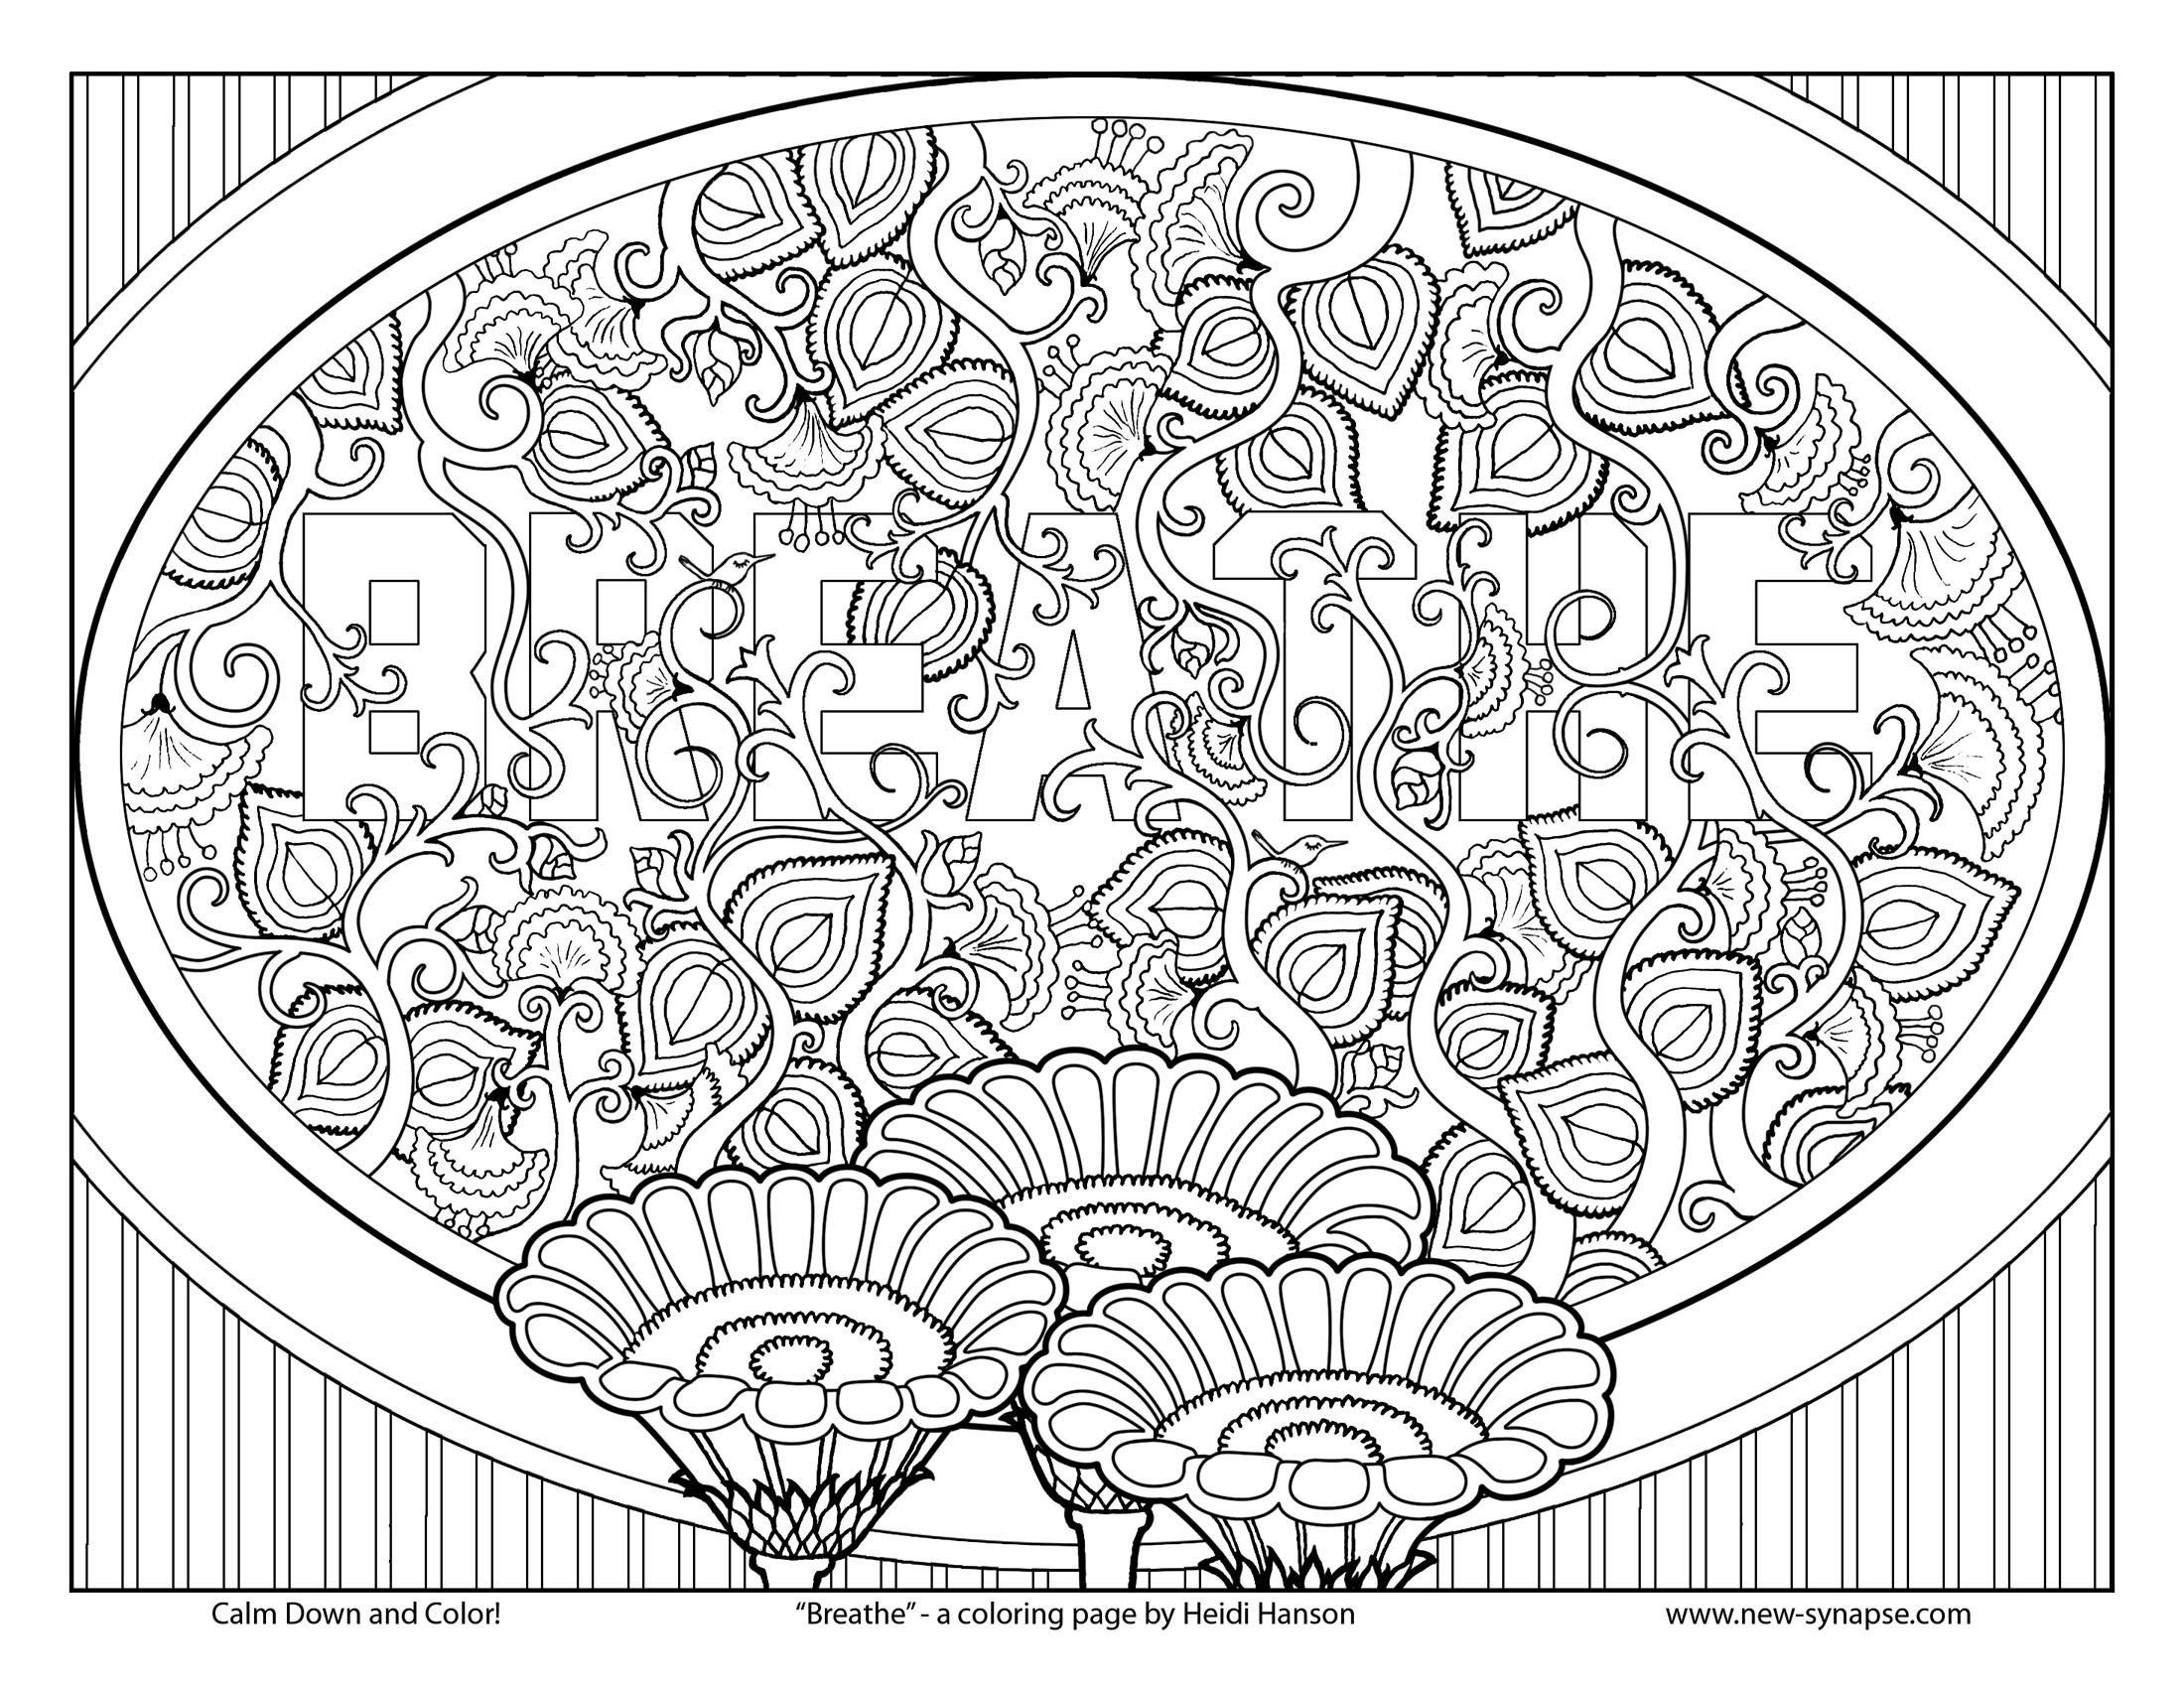 Coloring Book Album Cover Lovely Coloring Pages 54 Staggering Happy Campers Coloring Book Coloring In 2020 Coloring Pages Doodle Coloring Mandala Coloring Pages